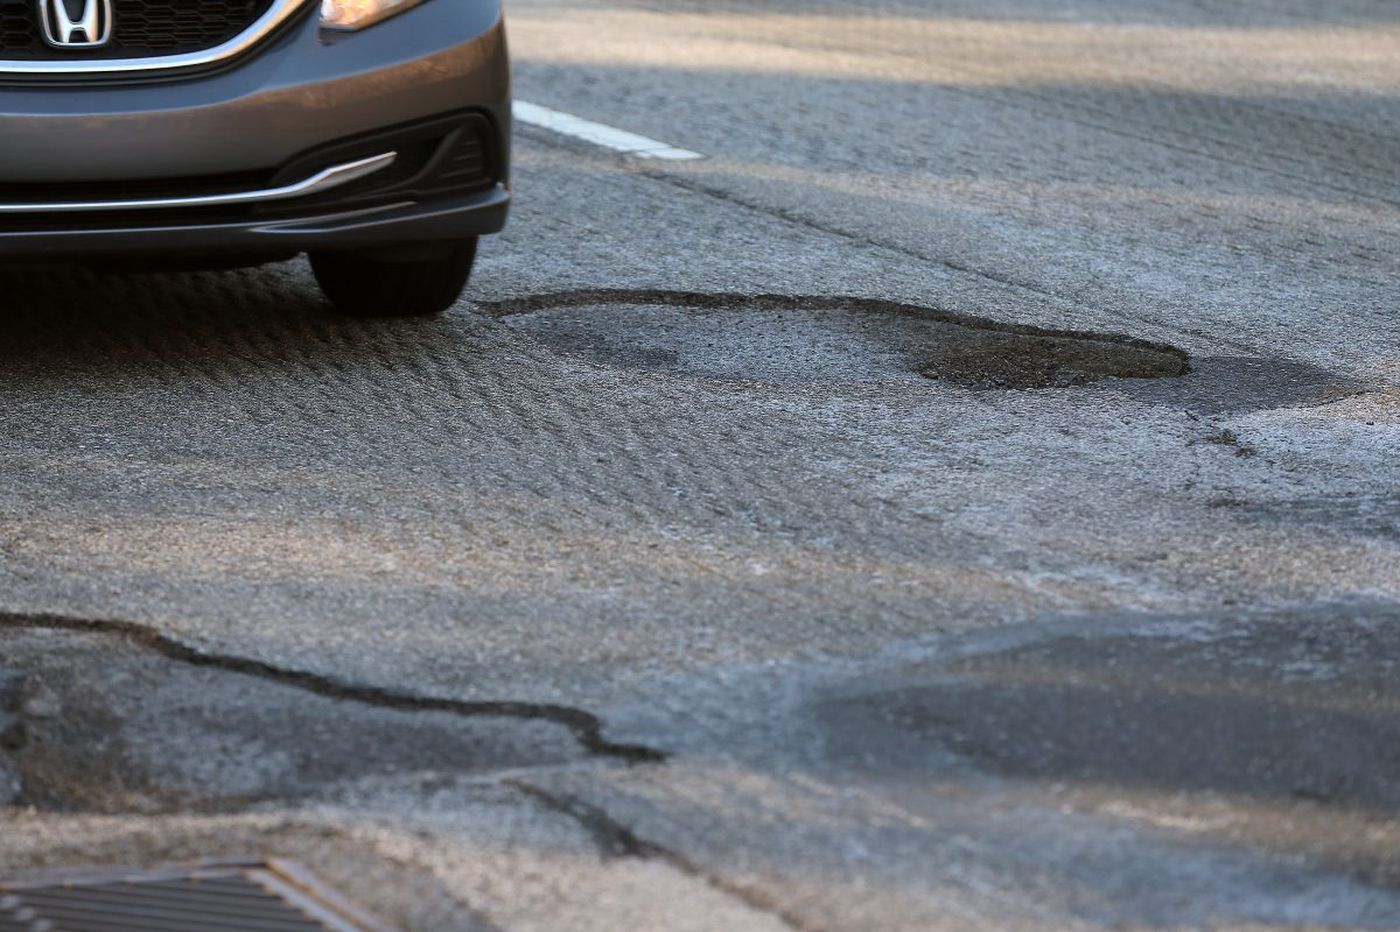 Motorists beware: Potholes are flattening tires around the region